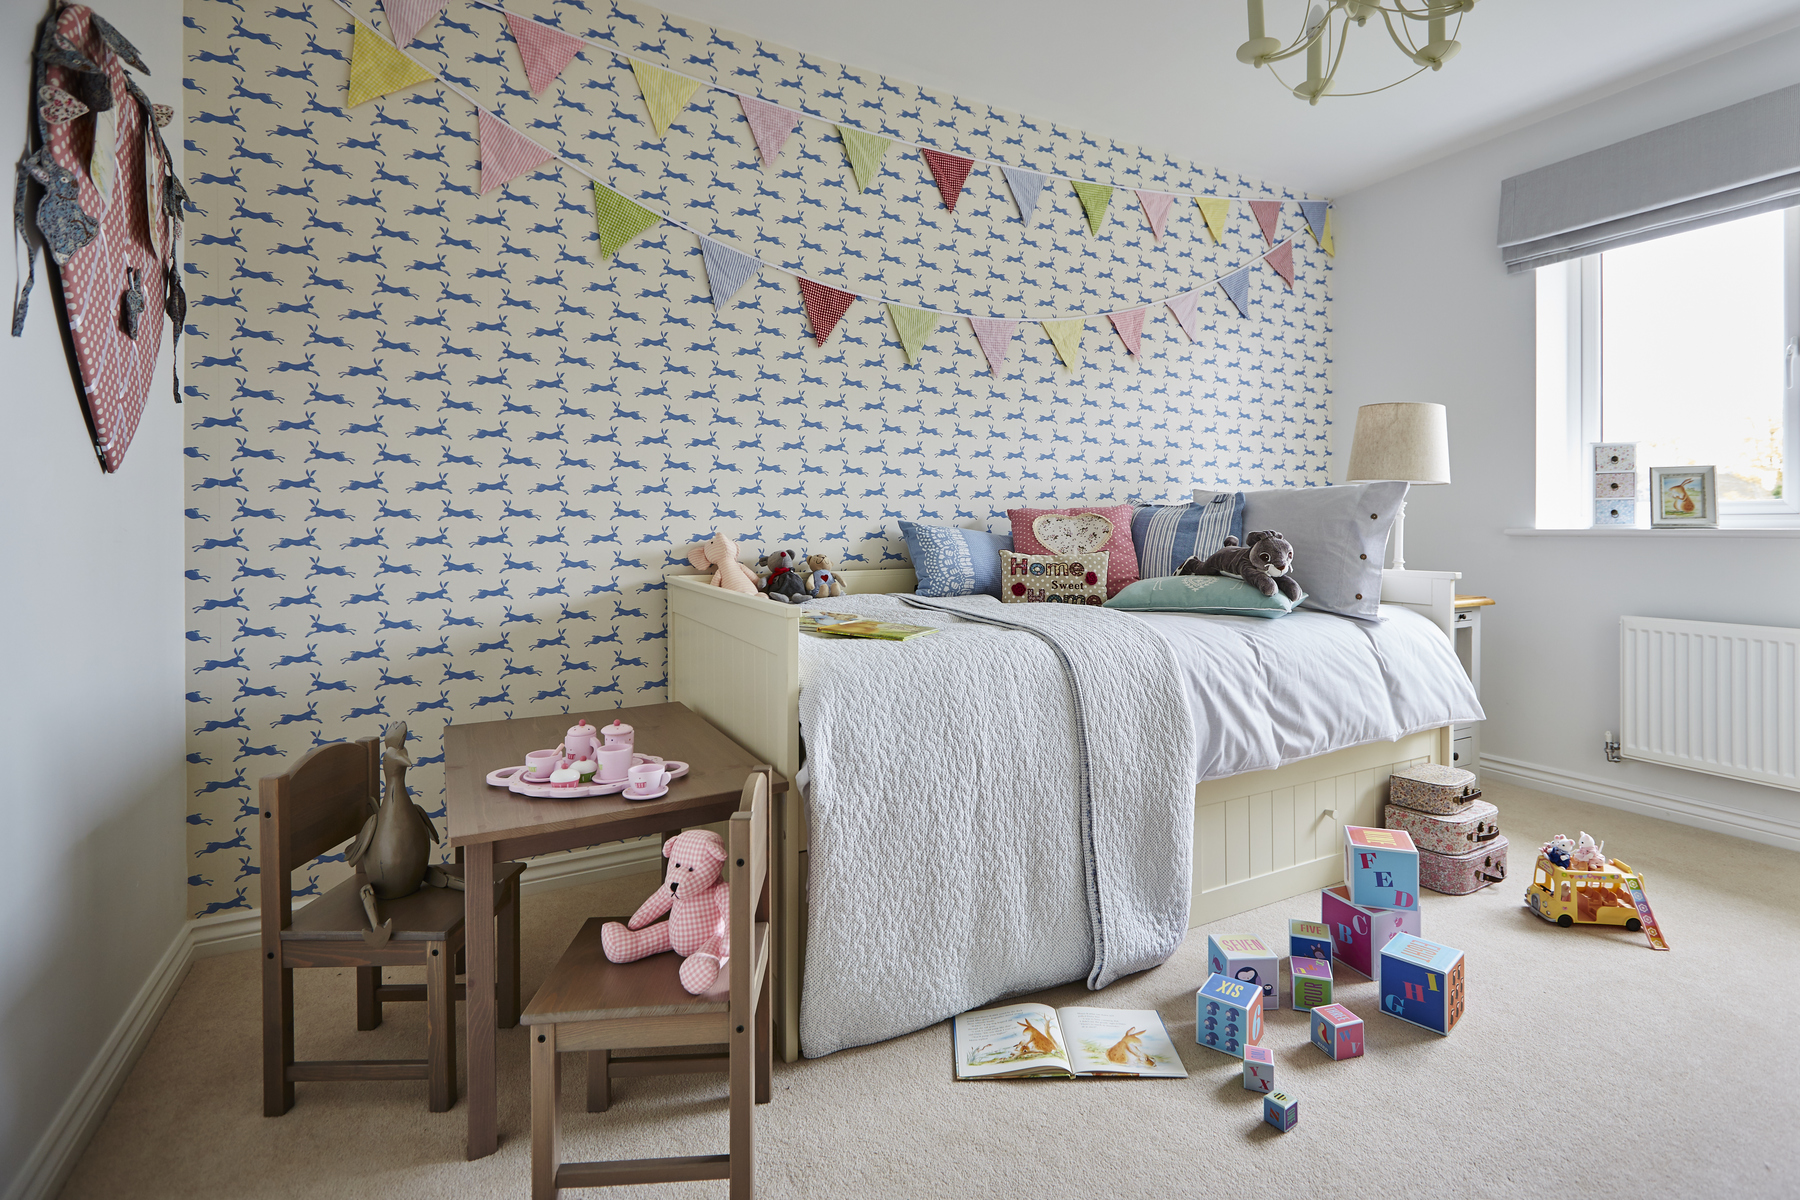 tw_westmids_nursery_meadow_barford_pa49_thornford_childs_bedroom